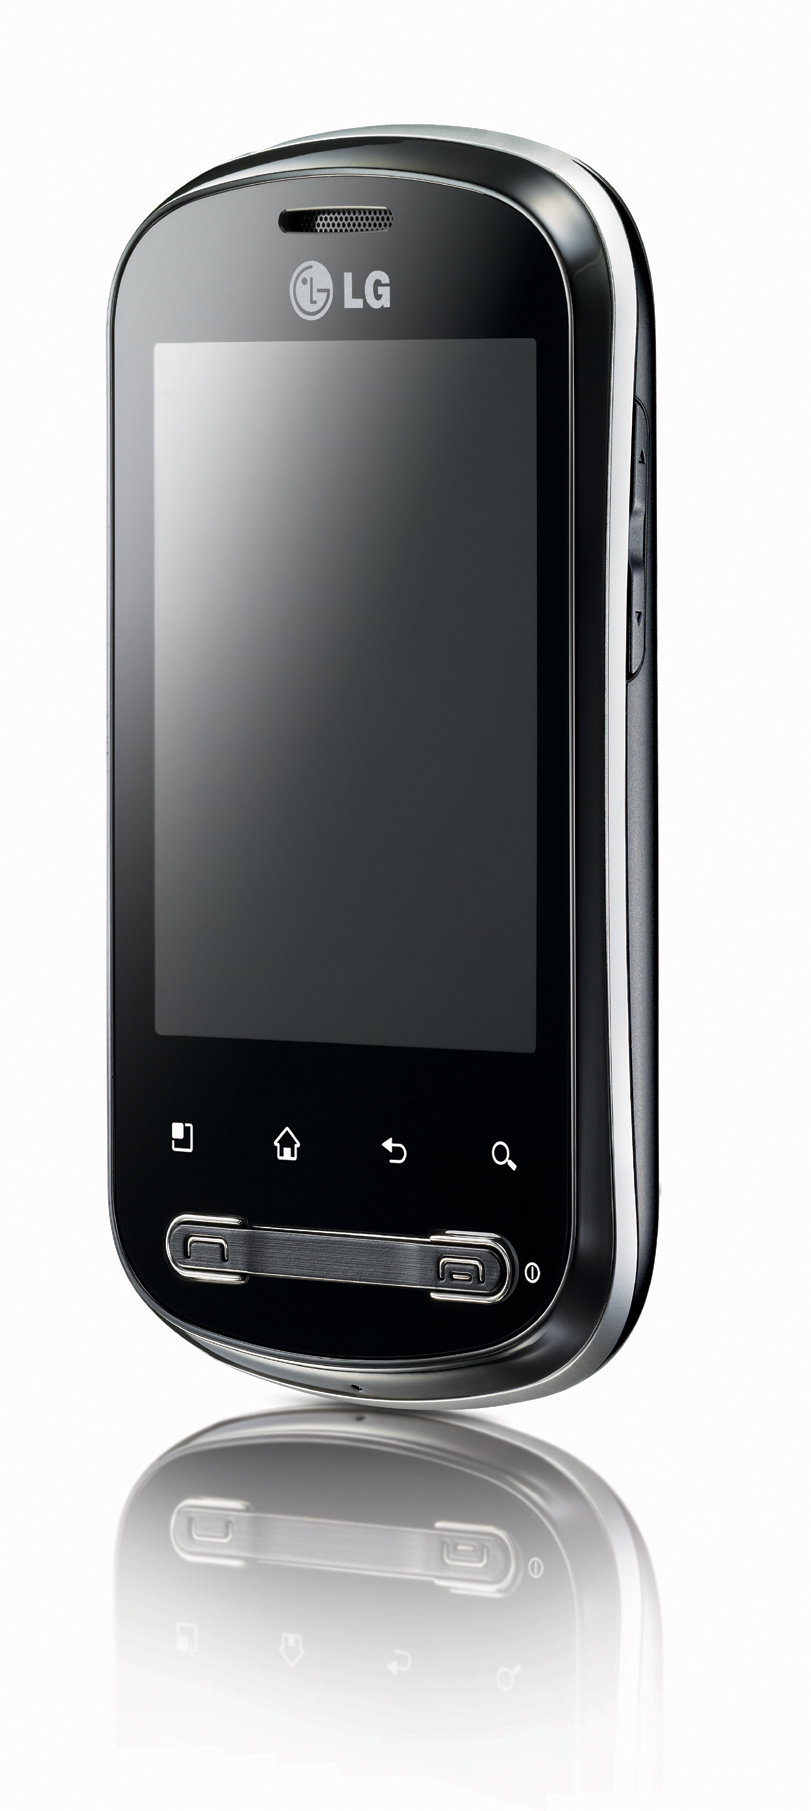 LG P350 ANDROID USB DRIVER DOWNLOAD